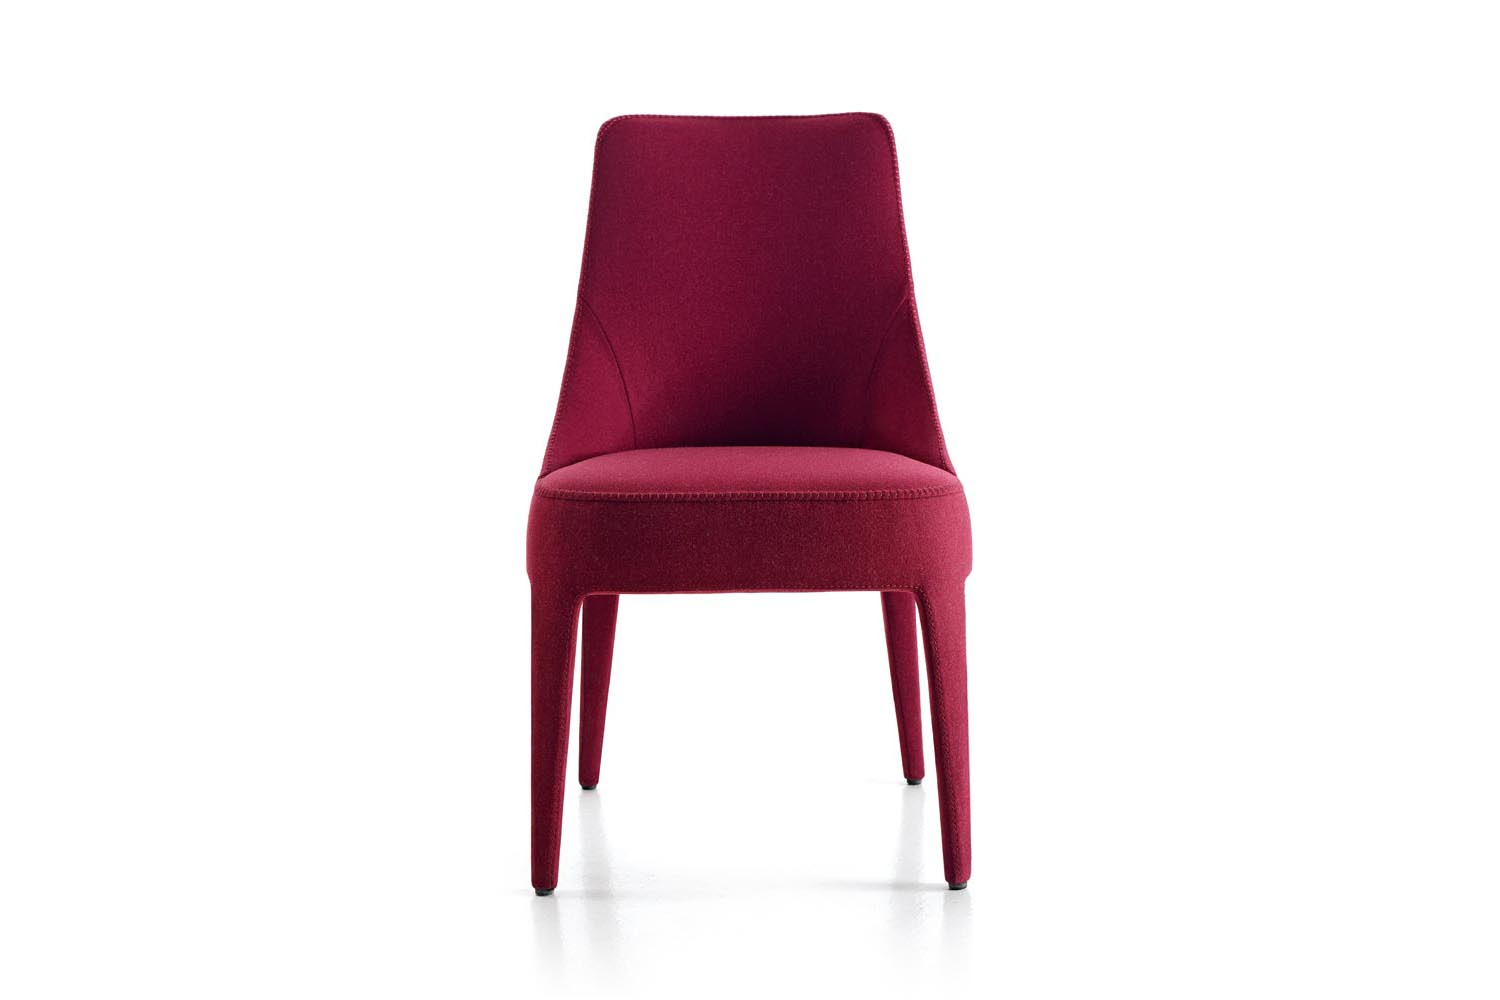 Febo chair by antonio citterio for maxalto space furniture for Furniture chairs